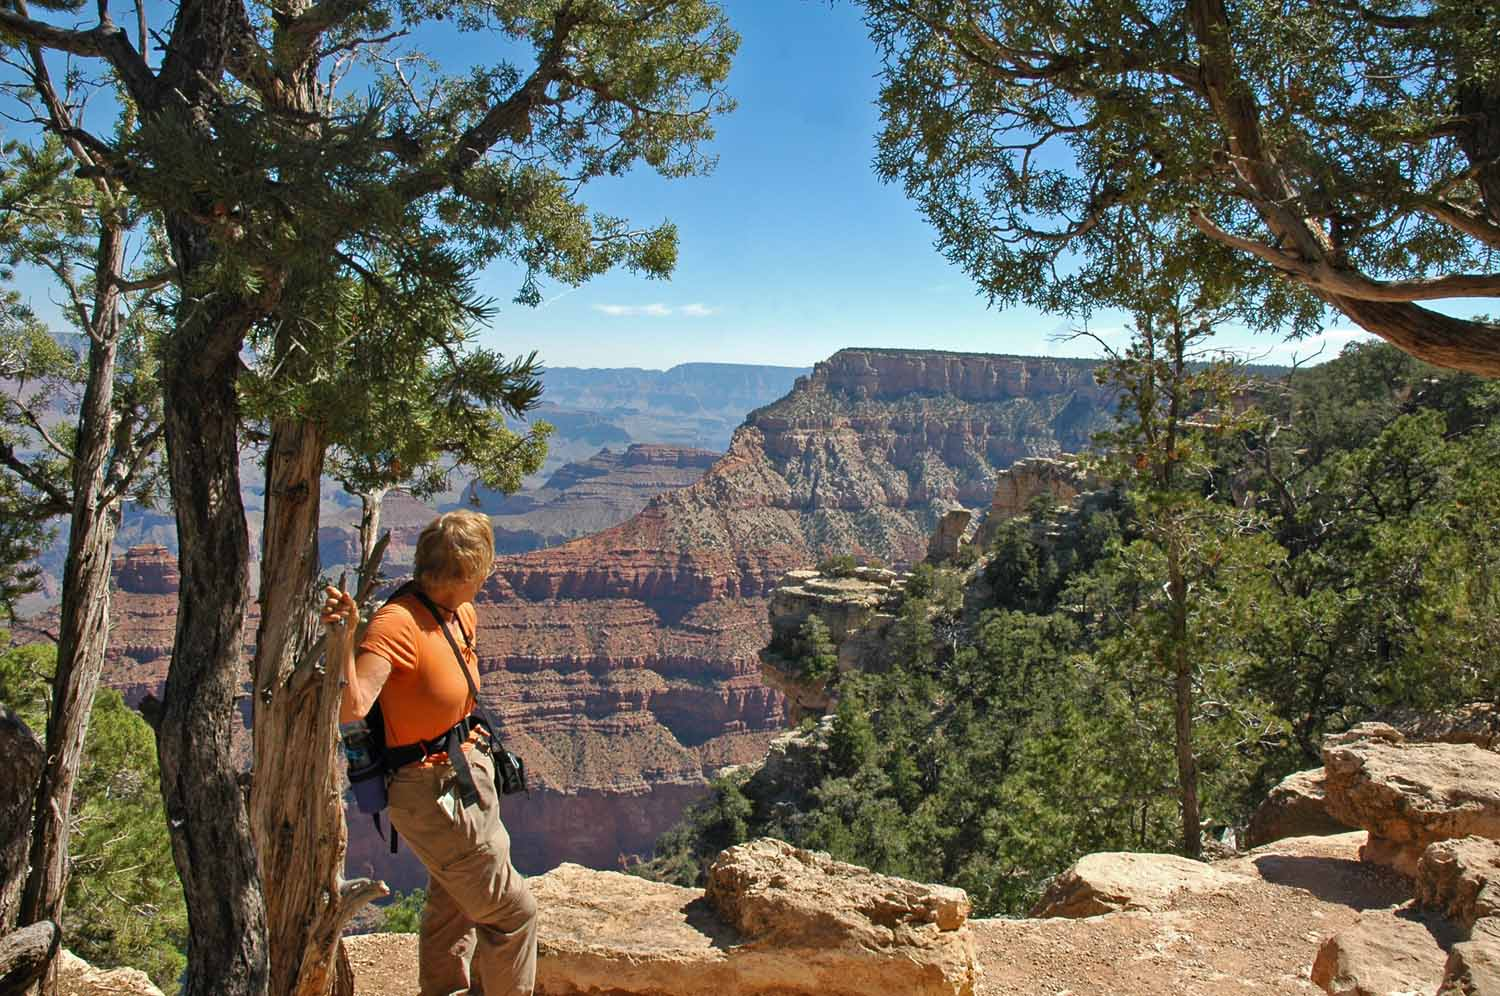 South Rim Trail - East - Time out to enjoy the view